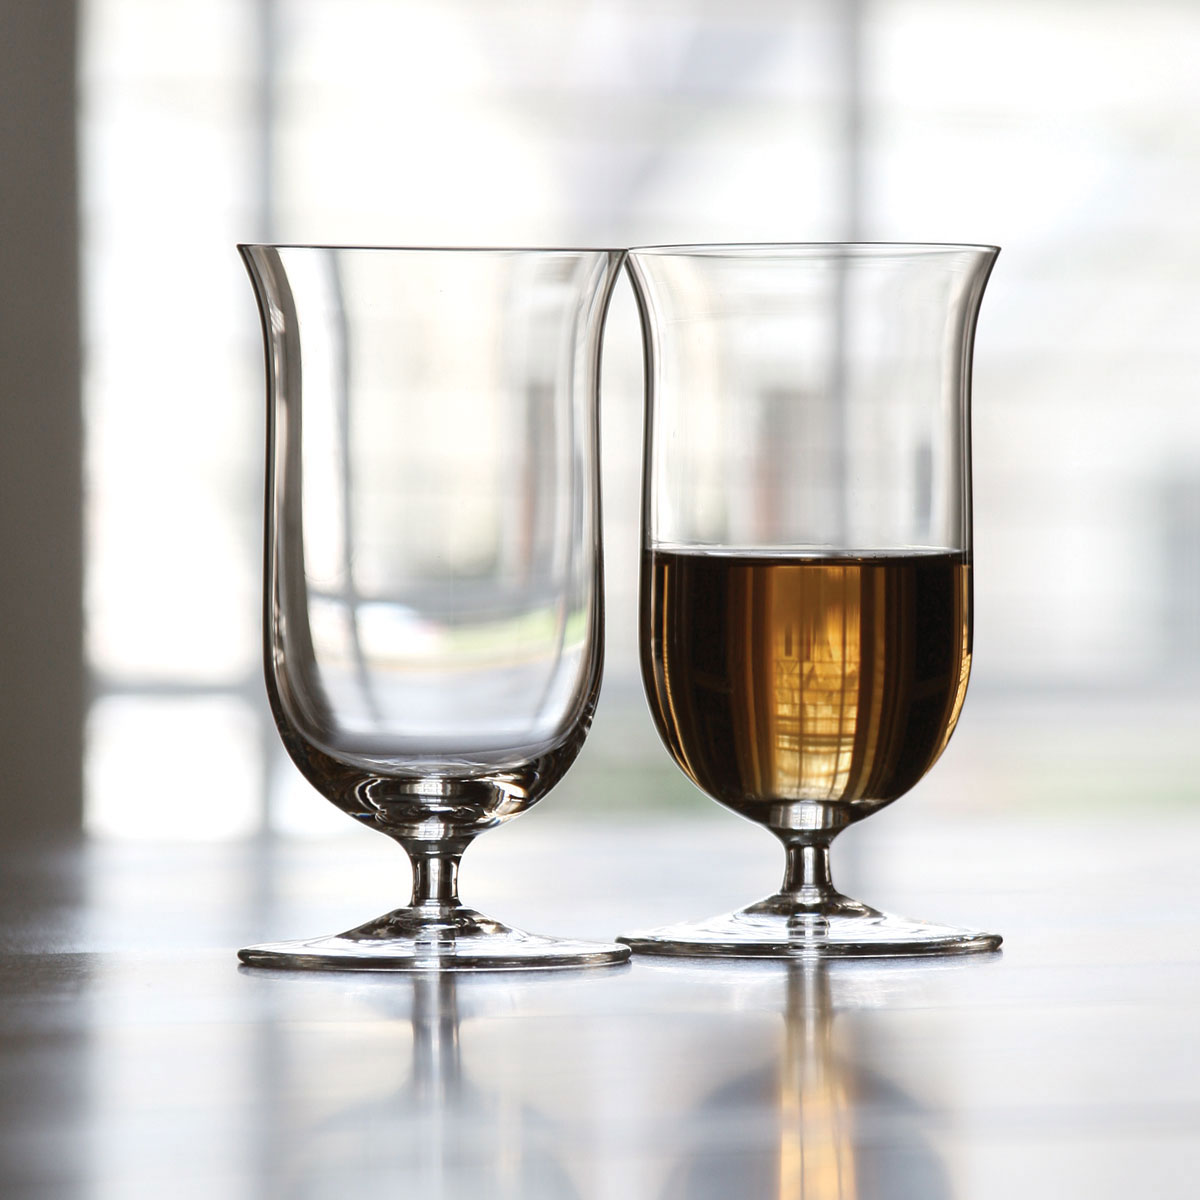 Riedel Sommeliers, Hand Made Crystal Wine Glass, Single Malt Whiskey Crystal Glasses, Pair